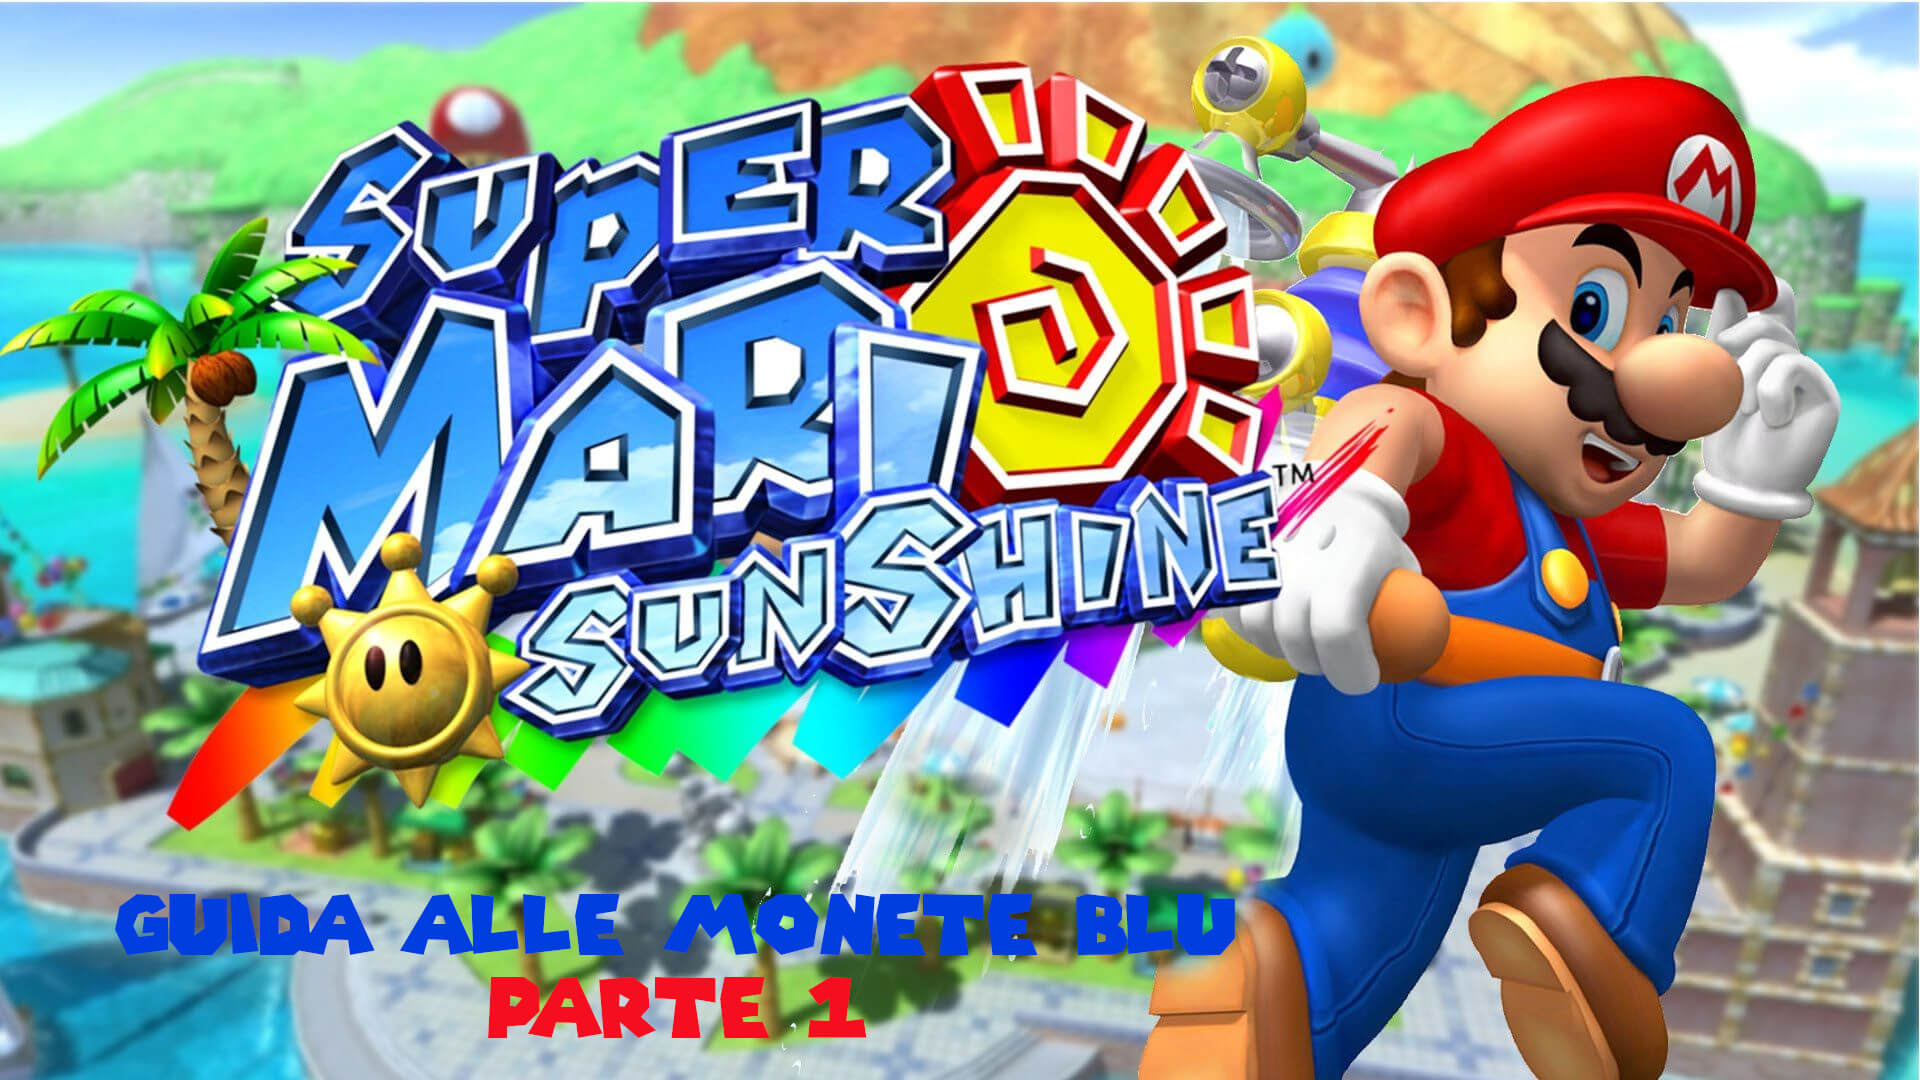 Cover Mario Sunshine Guida 1